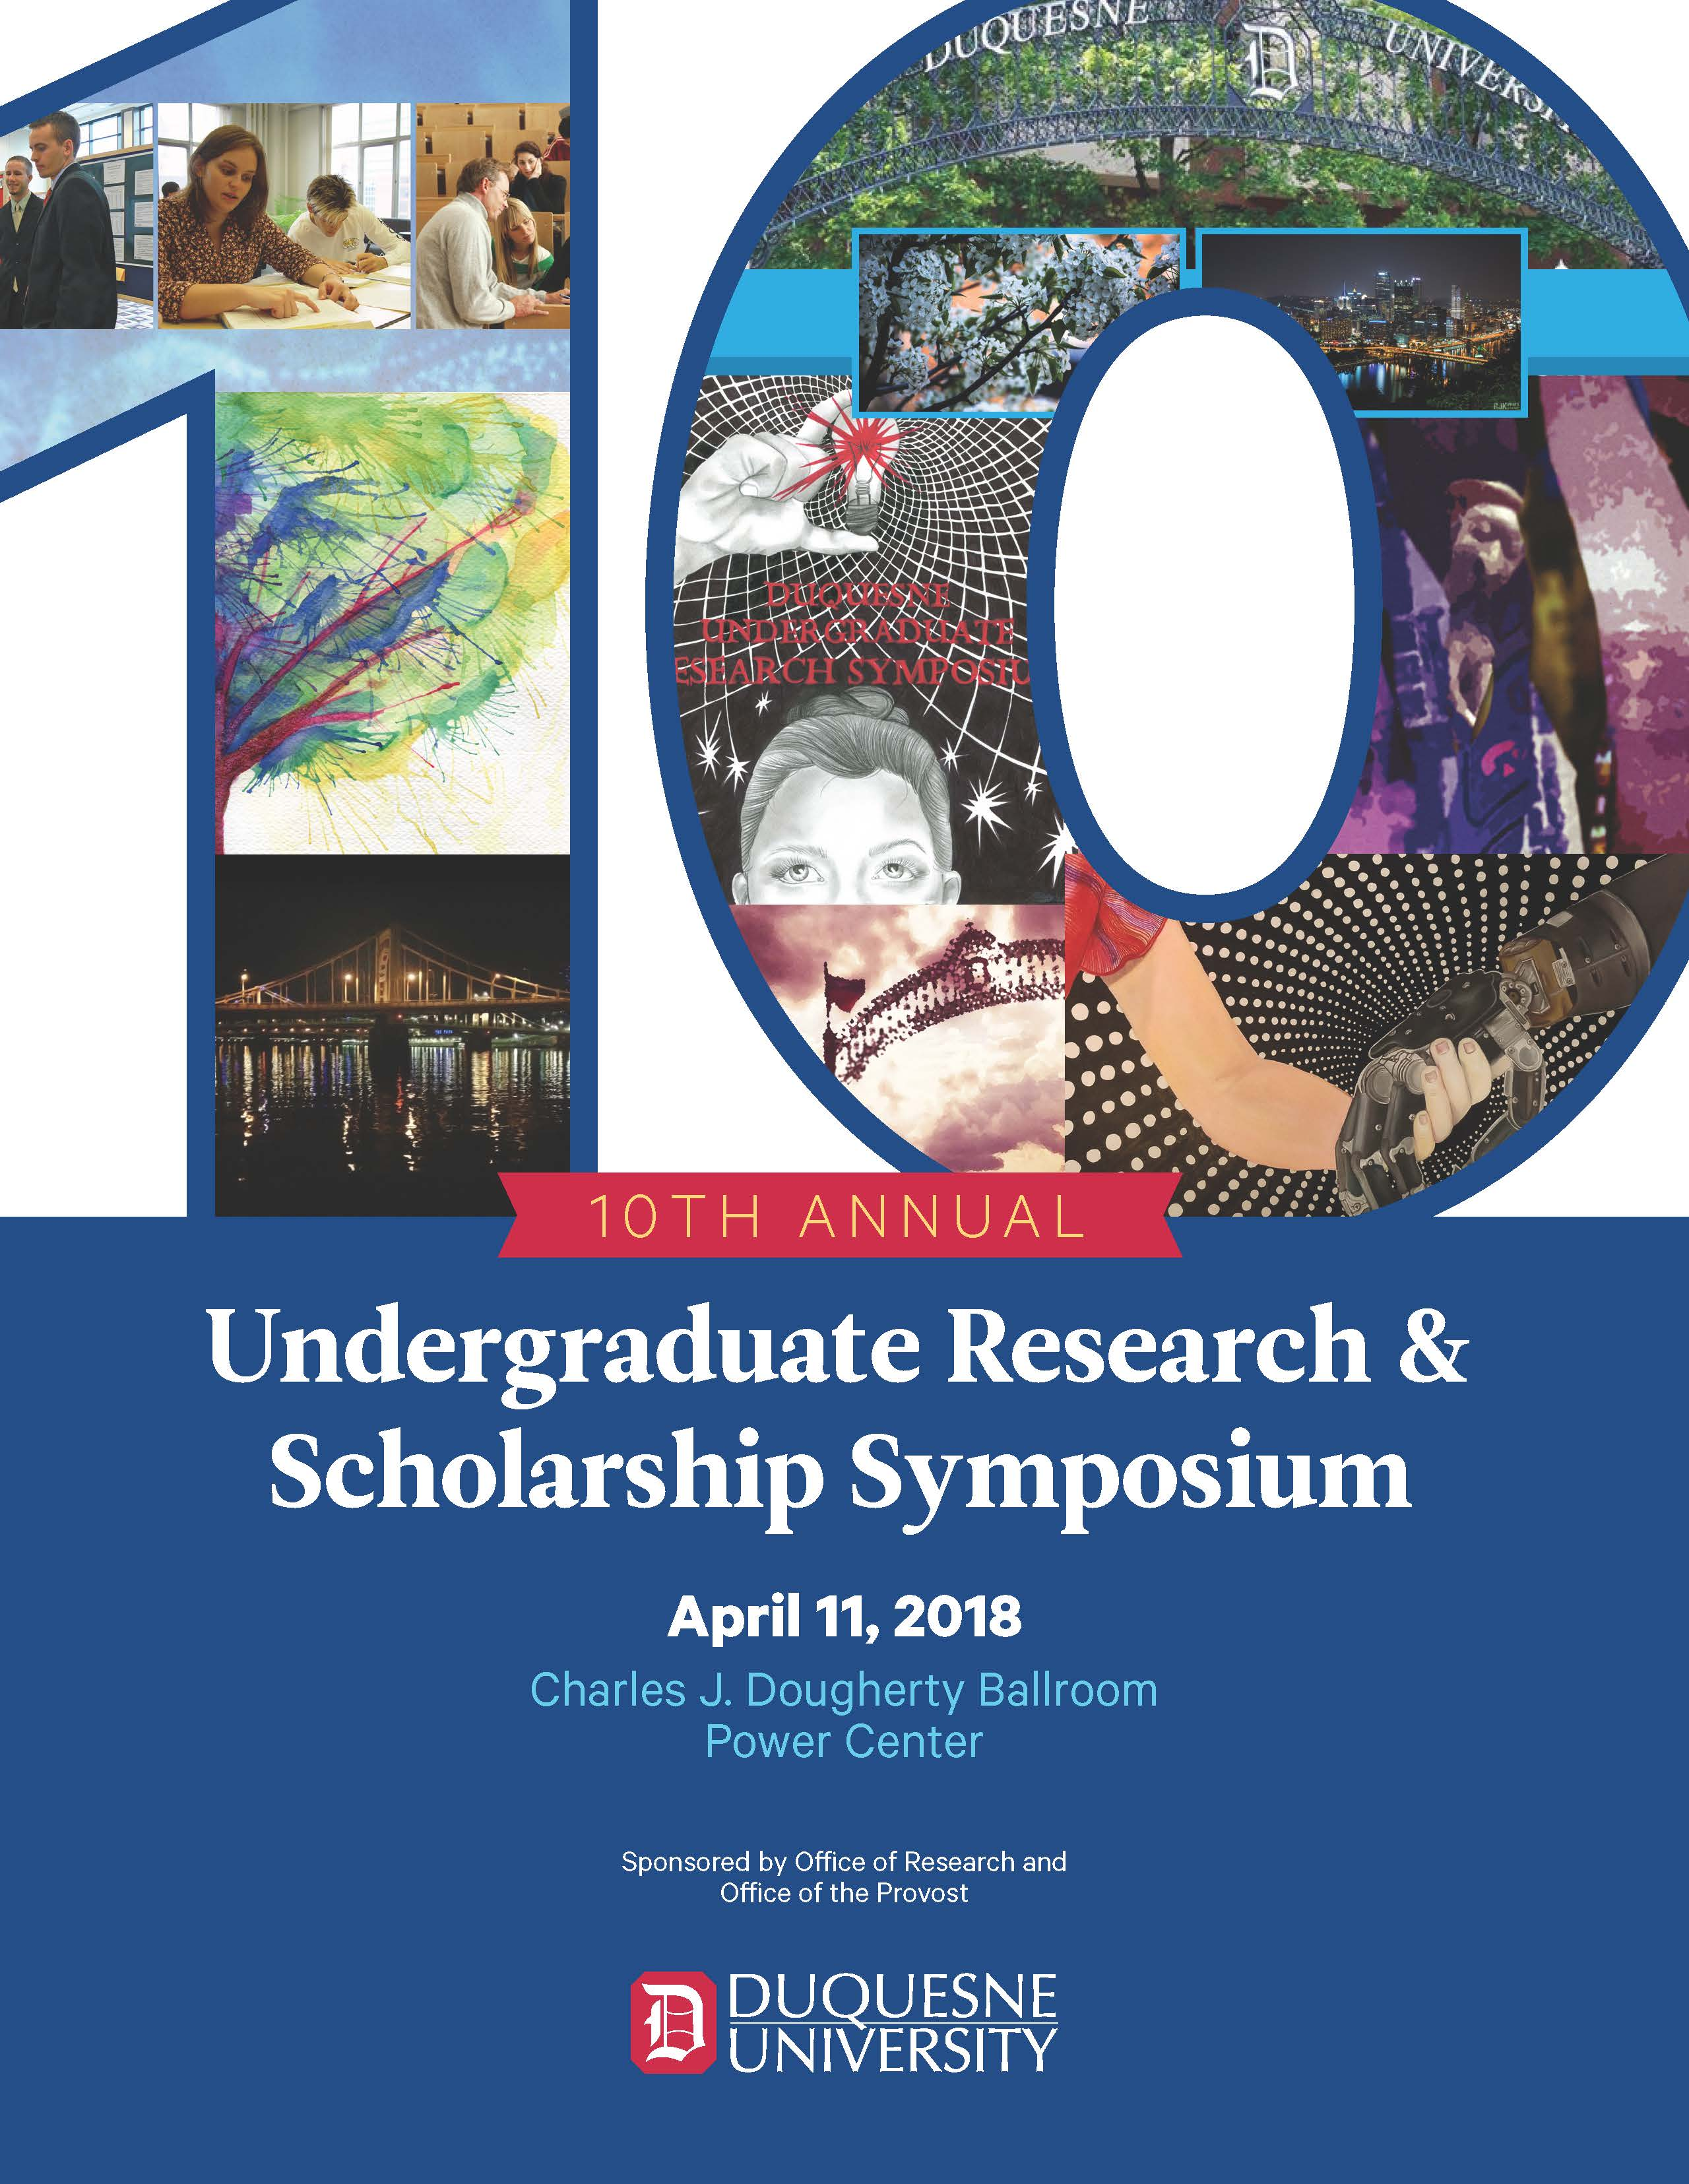 10th Annual Undergraduate Research & Scholarship Symposium